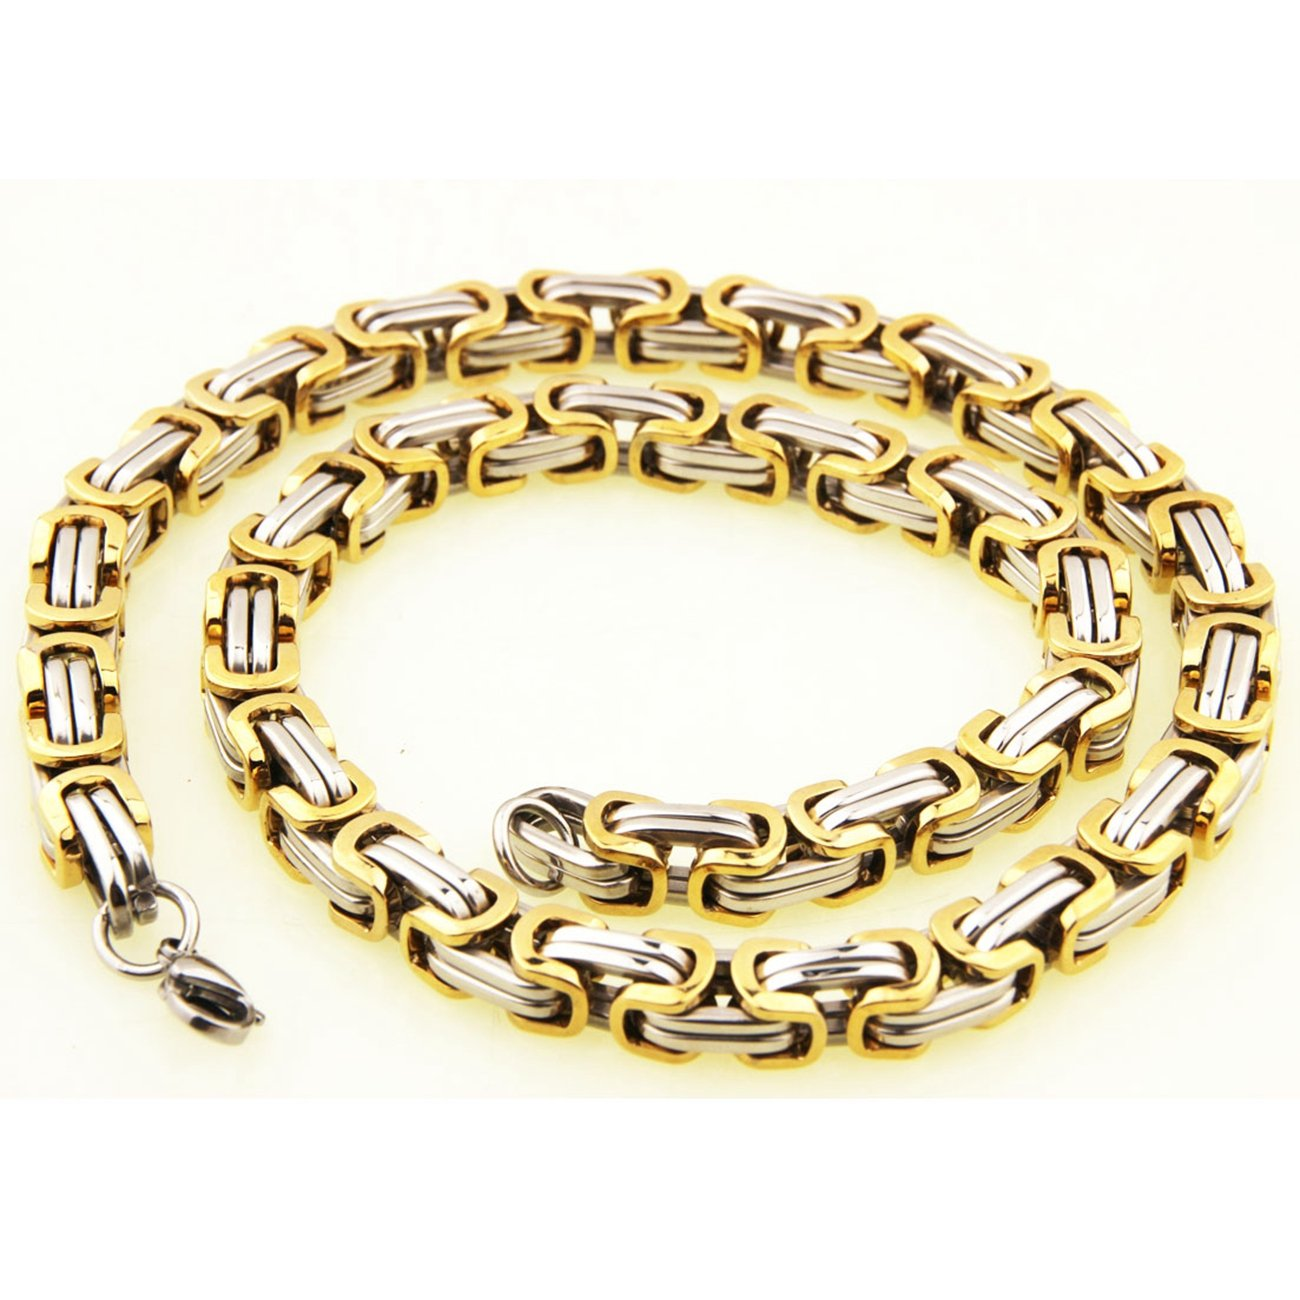 4mm Silver/&Gold Necklace Stainless Steel Byzantine Chain Mens Jewelry,16-40